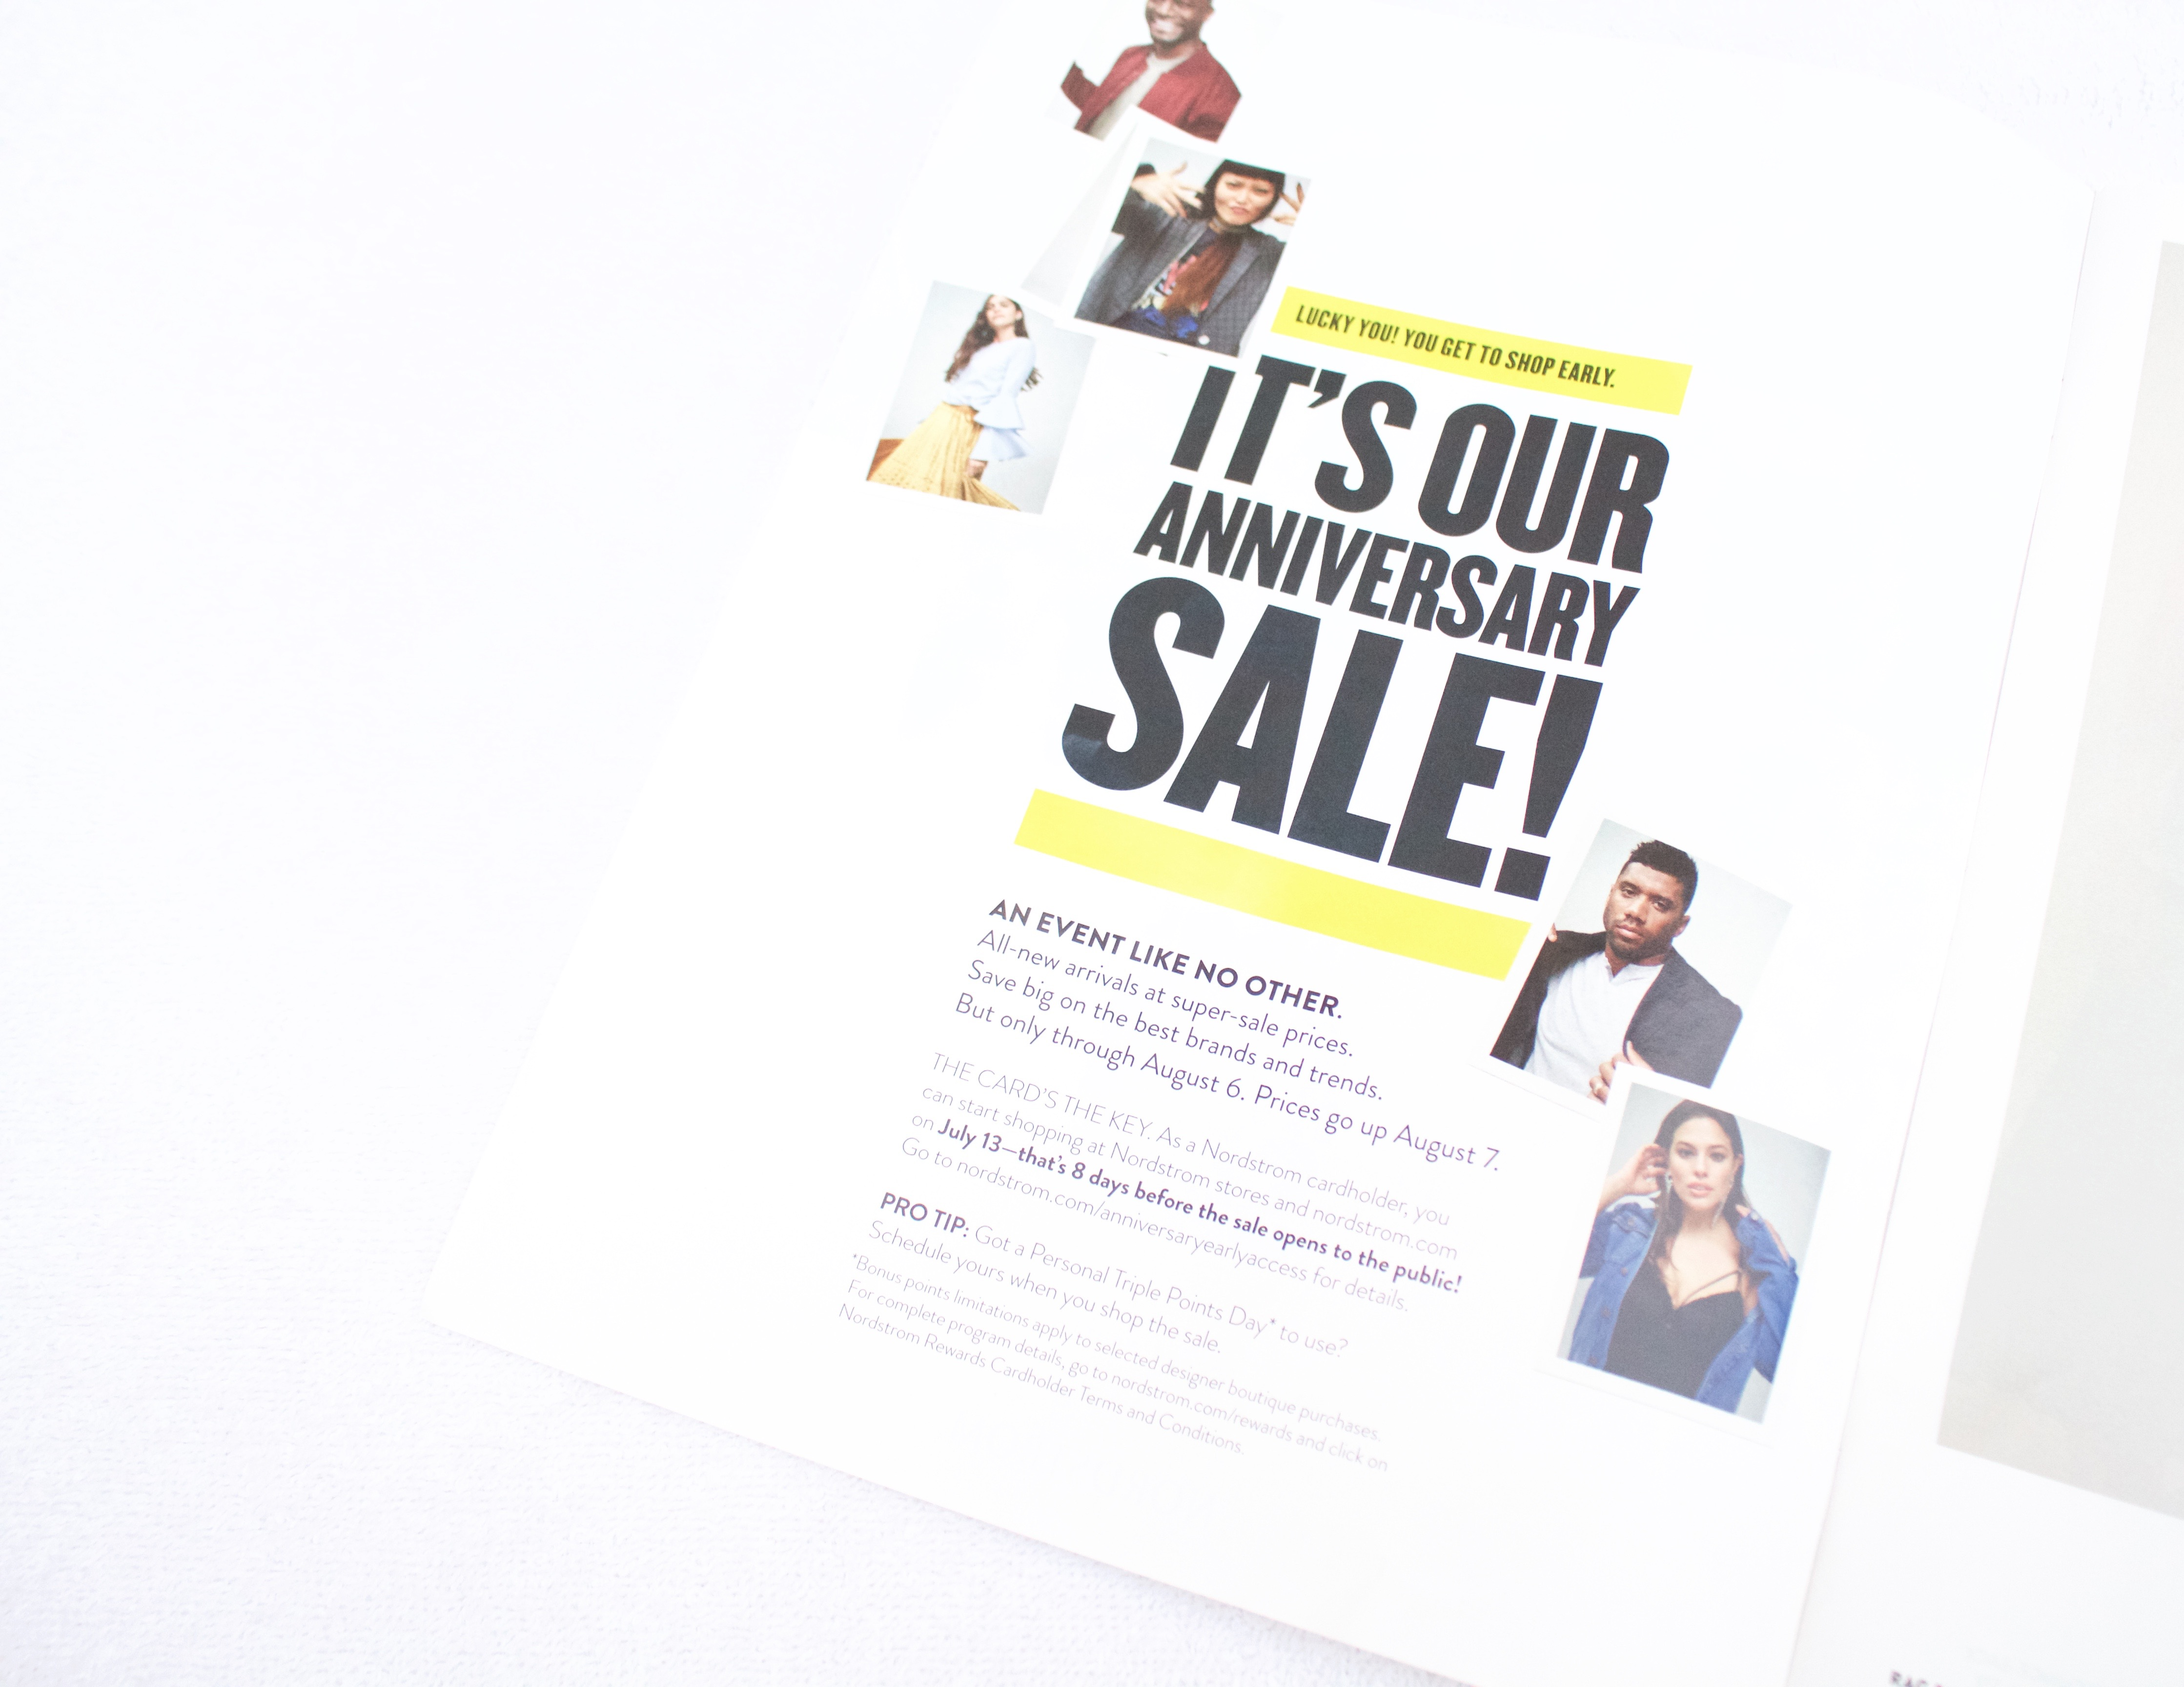 Nordstrom Anniversary Sale 2017: Tips + Early Access